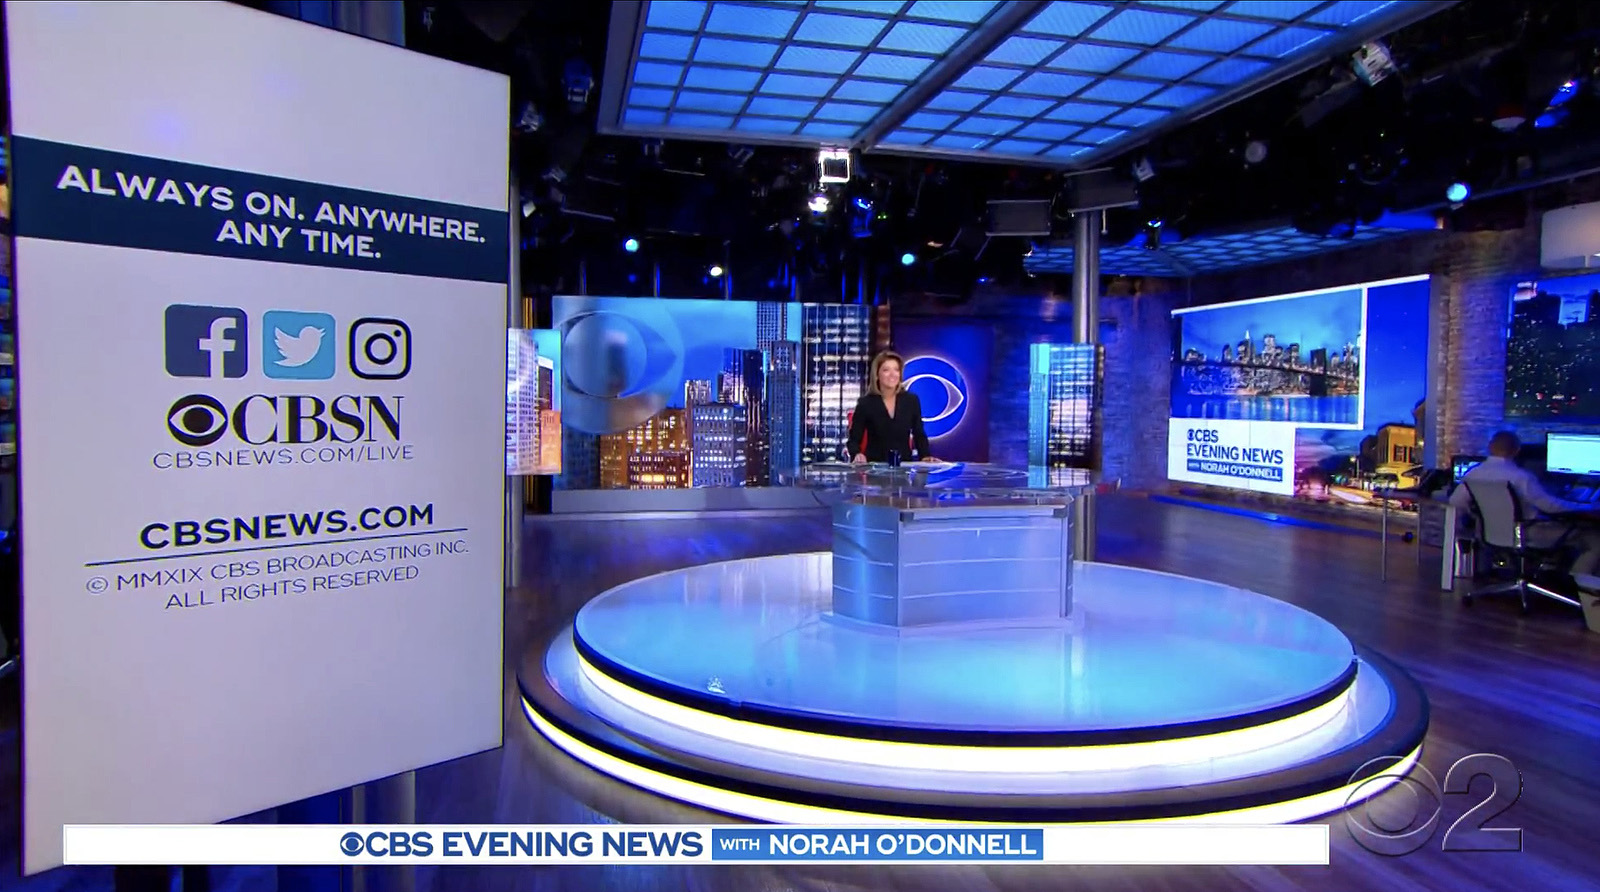 NCS_CBS-Evening-News_Norah-ODonnell_018